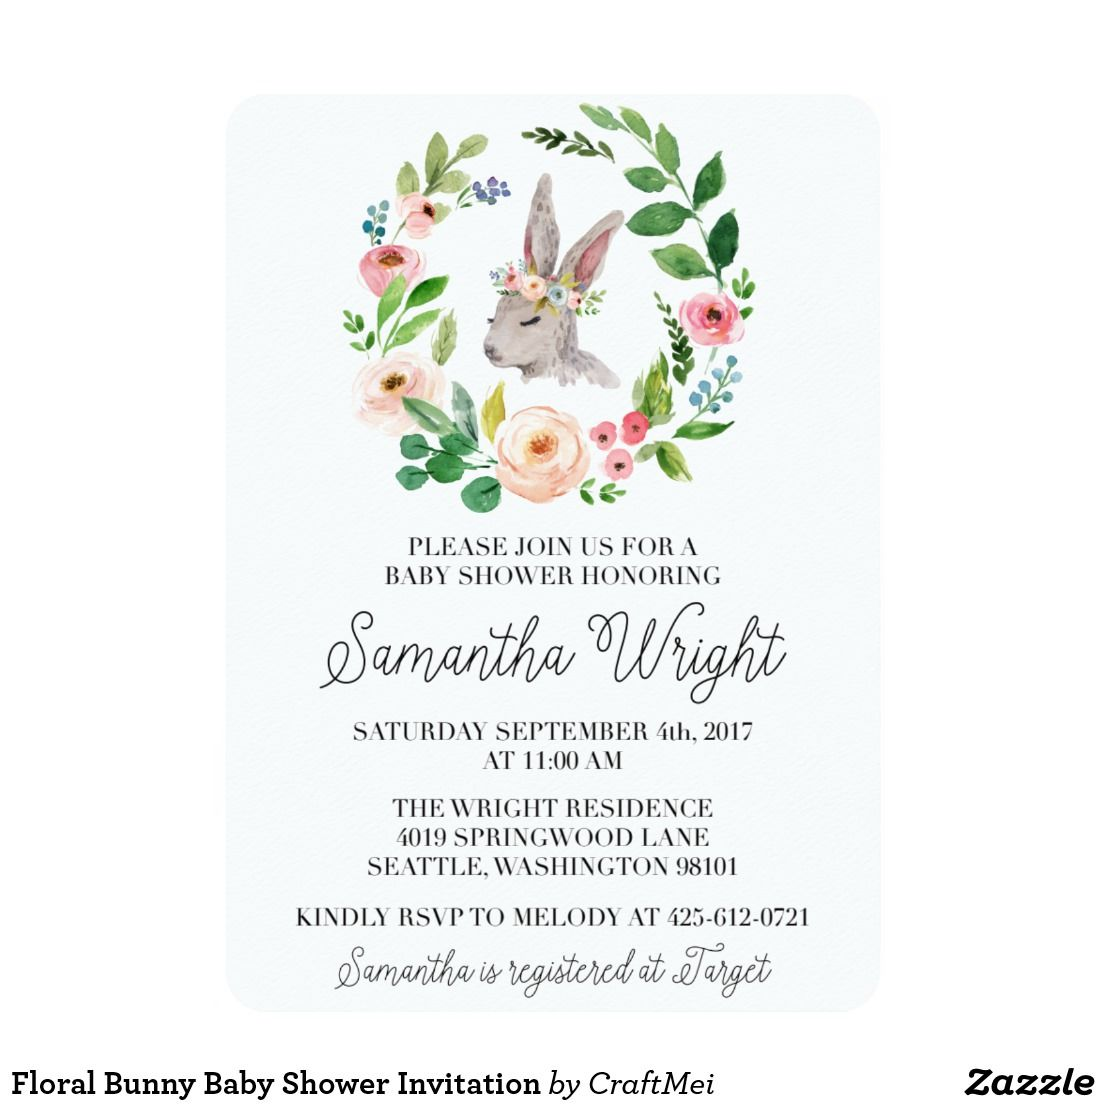 Floral Bunny Baby Shower Invitation